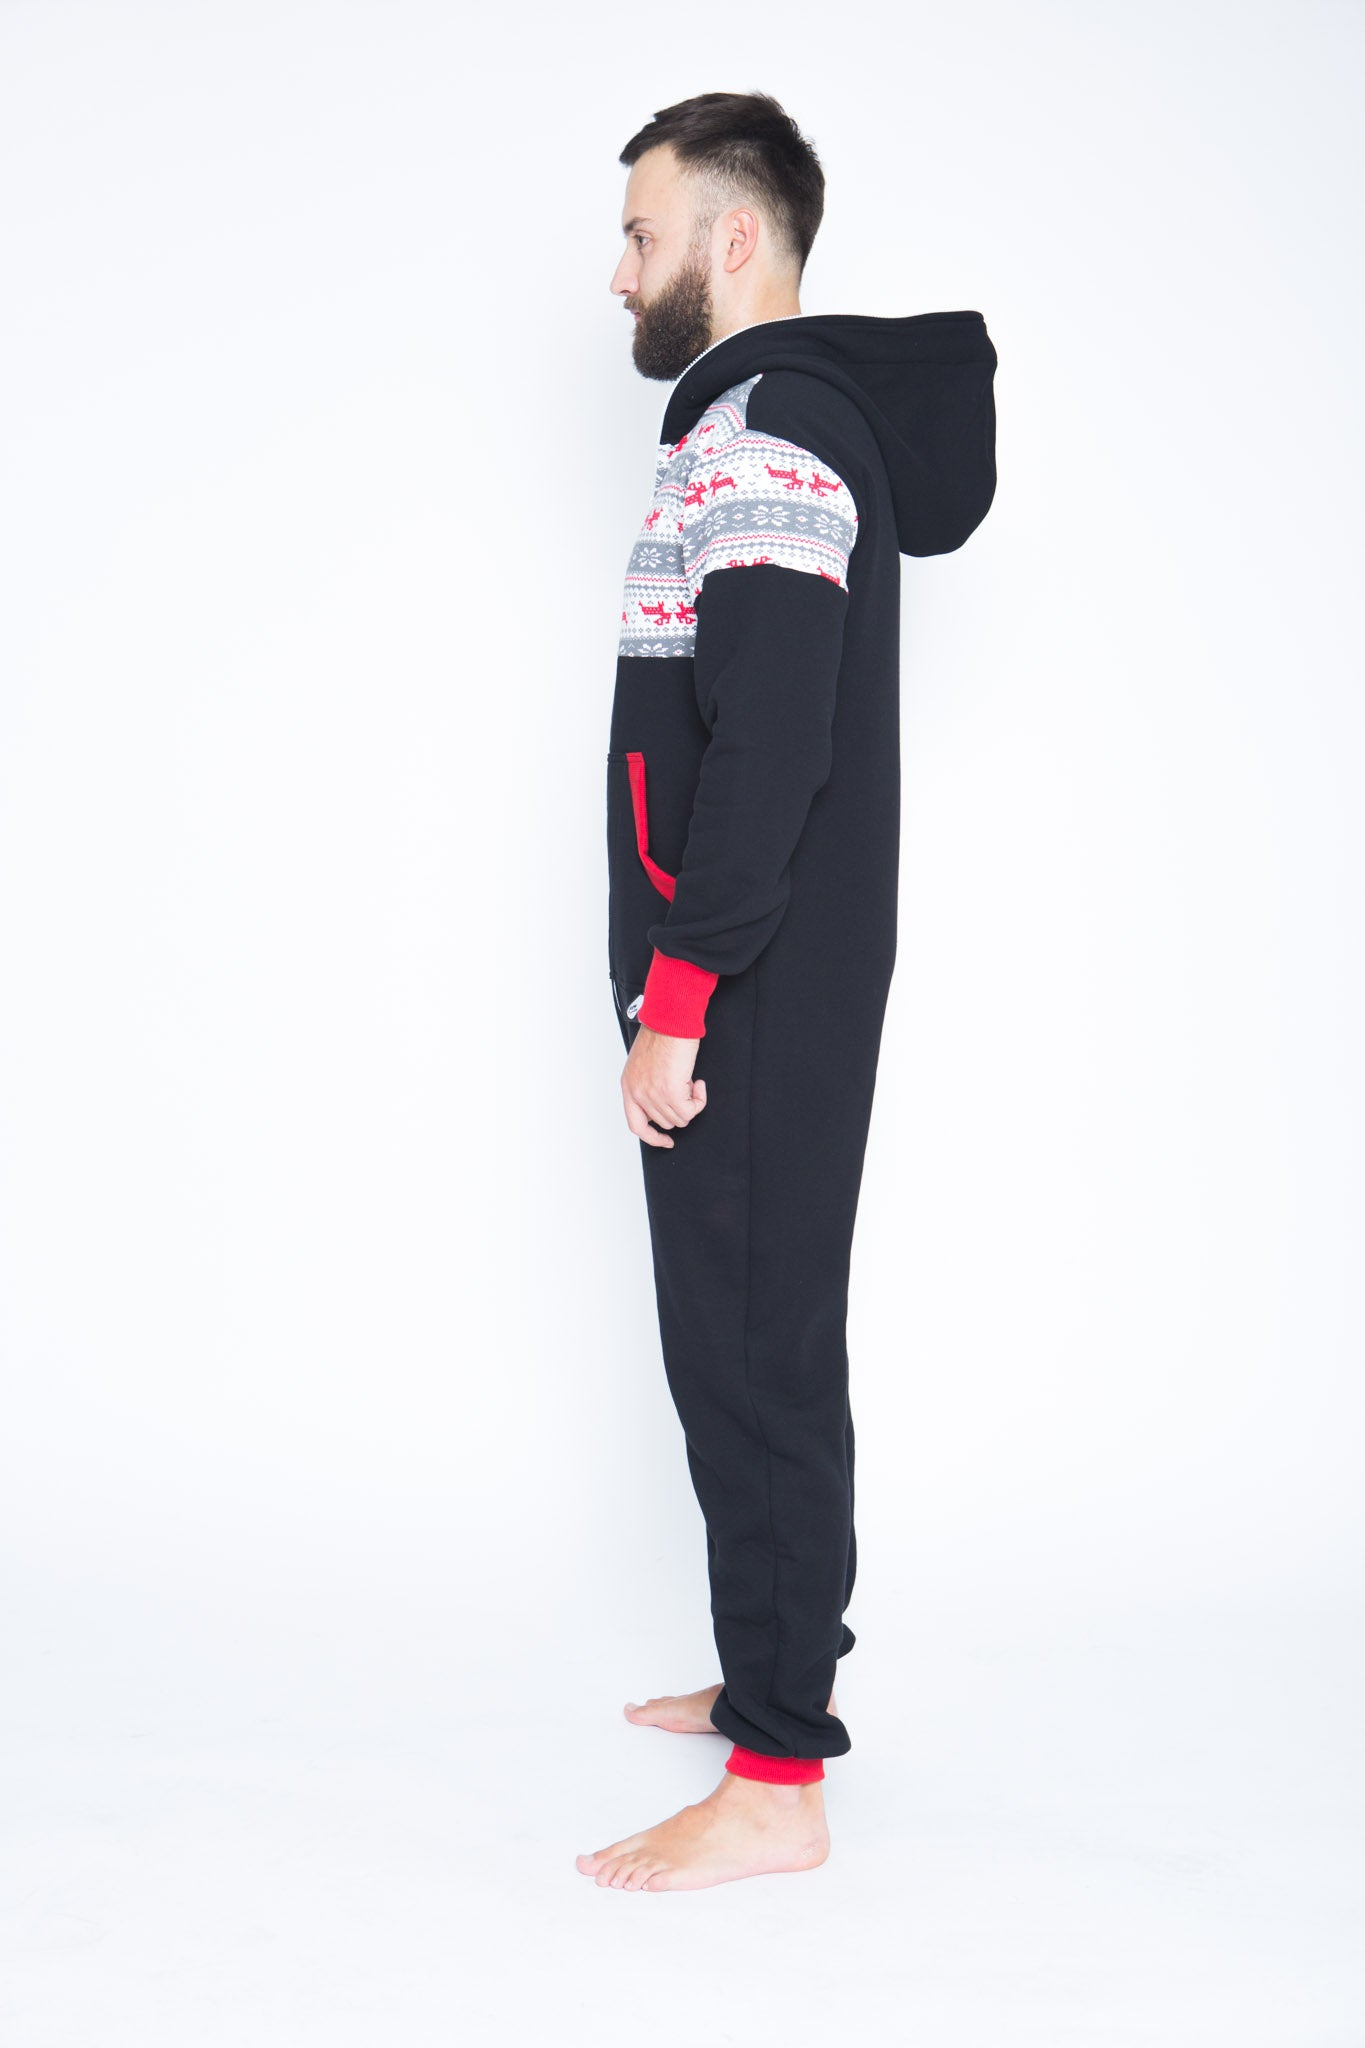 black men onesie with nordic aplication